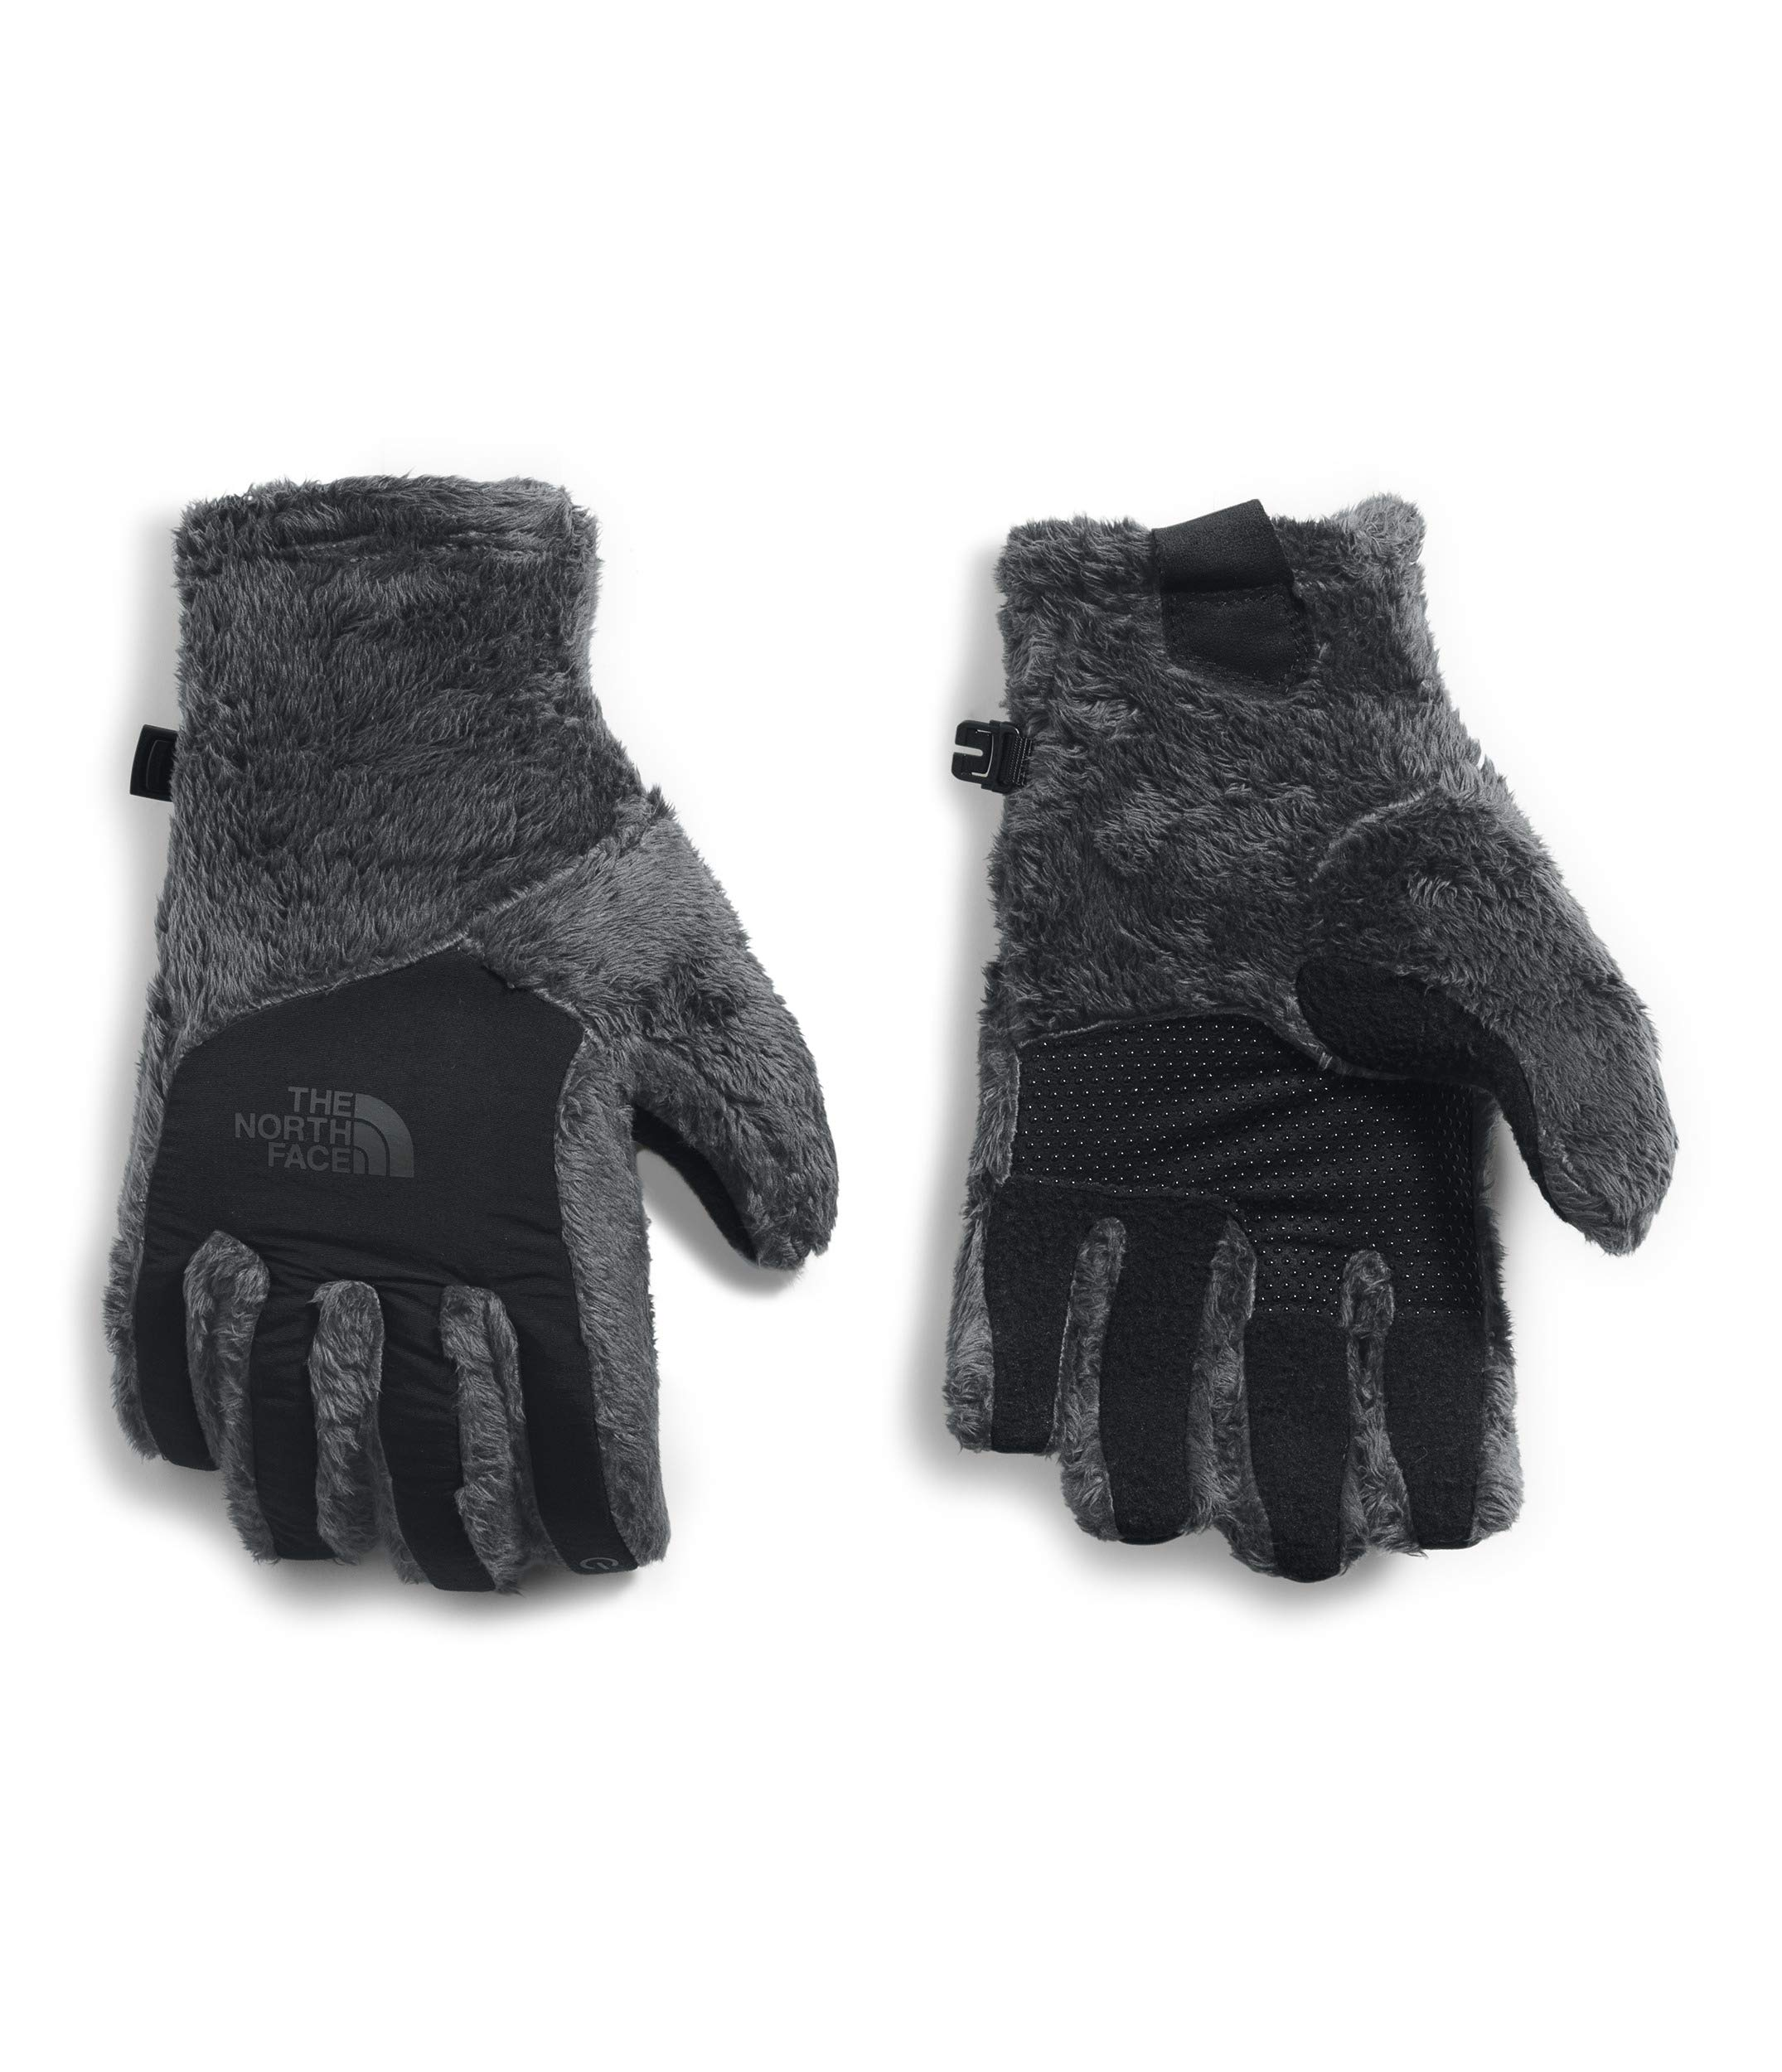 The North Face Women's Osito Etip Glove by The North Face